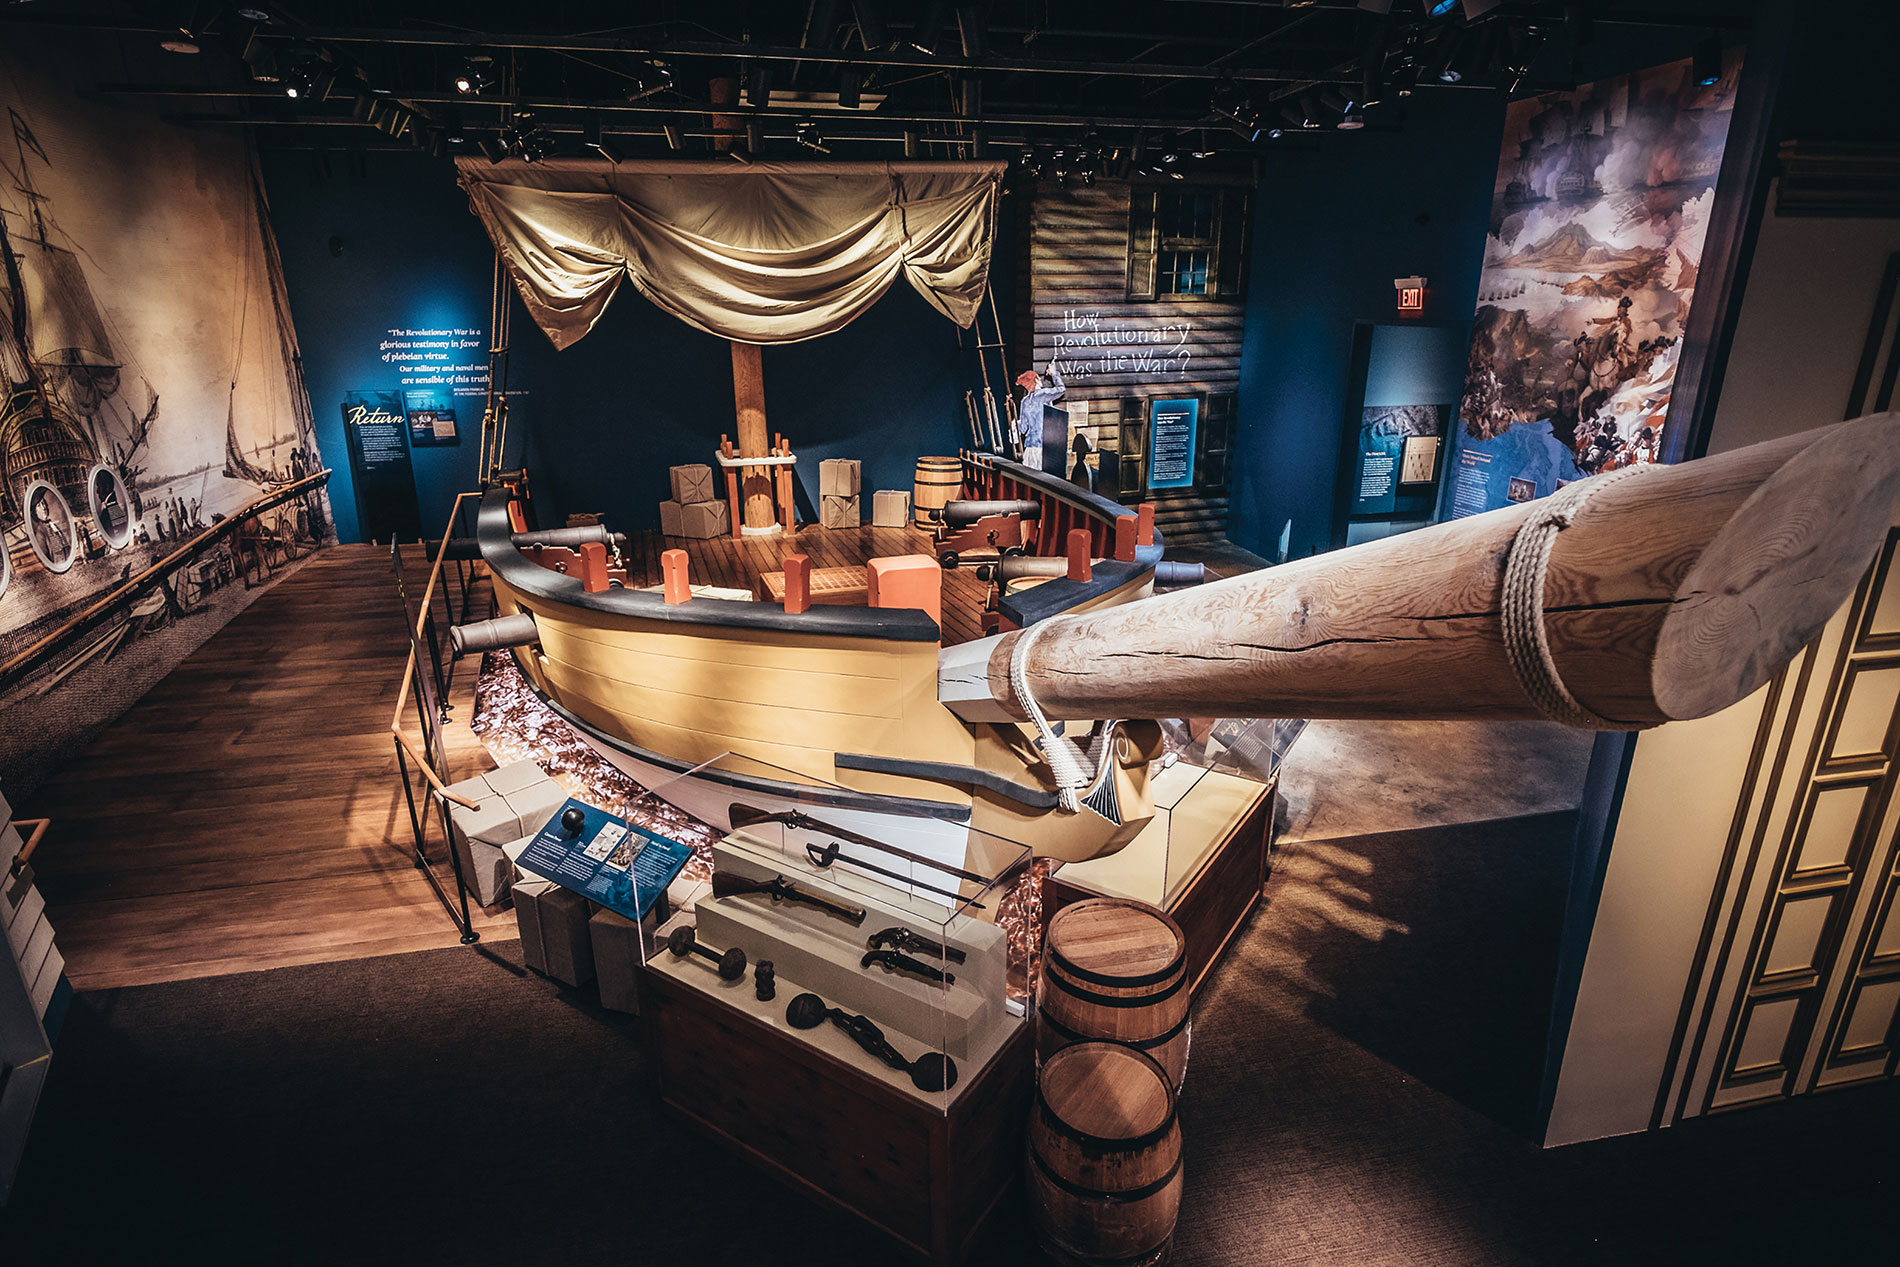 Visitors can do hands-on activities on this life-size replica privateer ship. Photo courtesy of the Museum of the American Revolution.